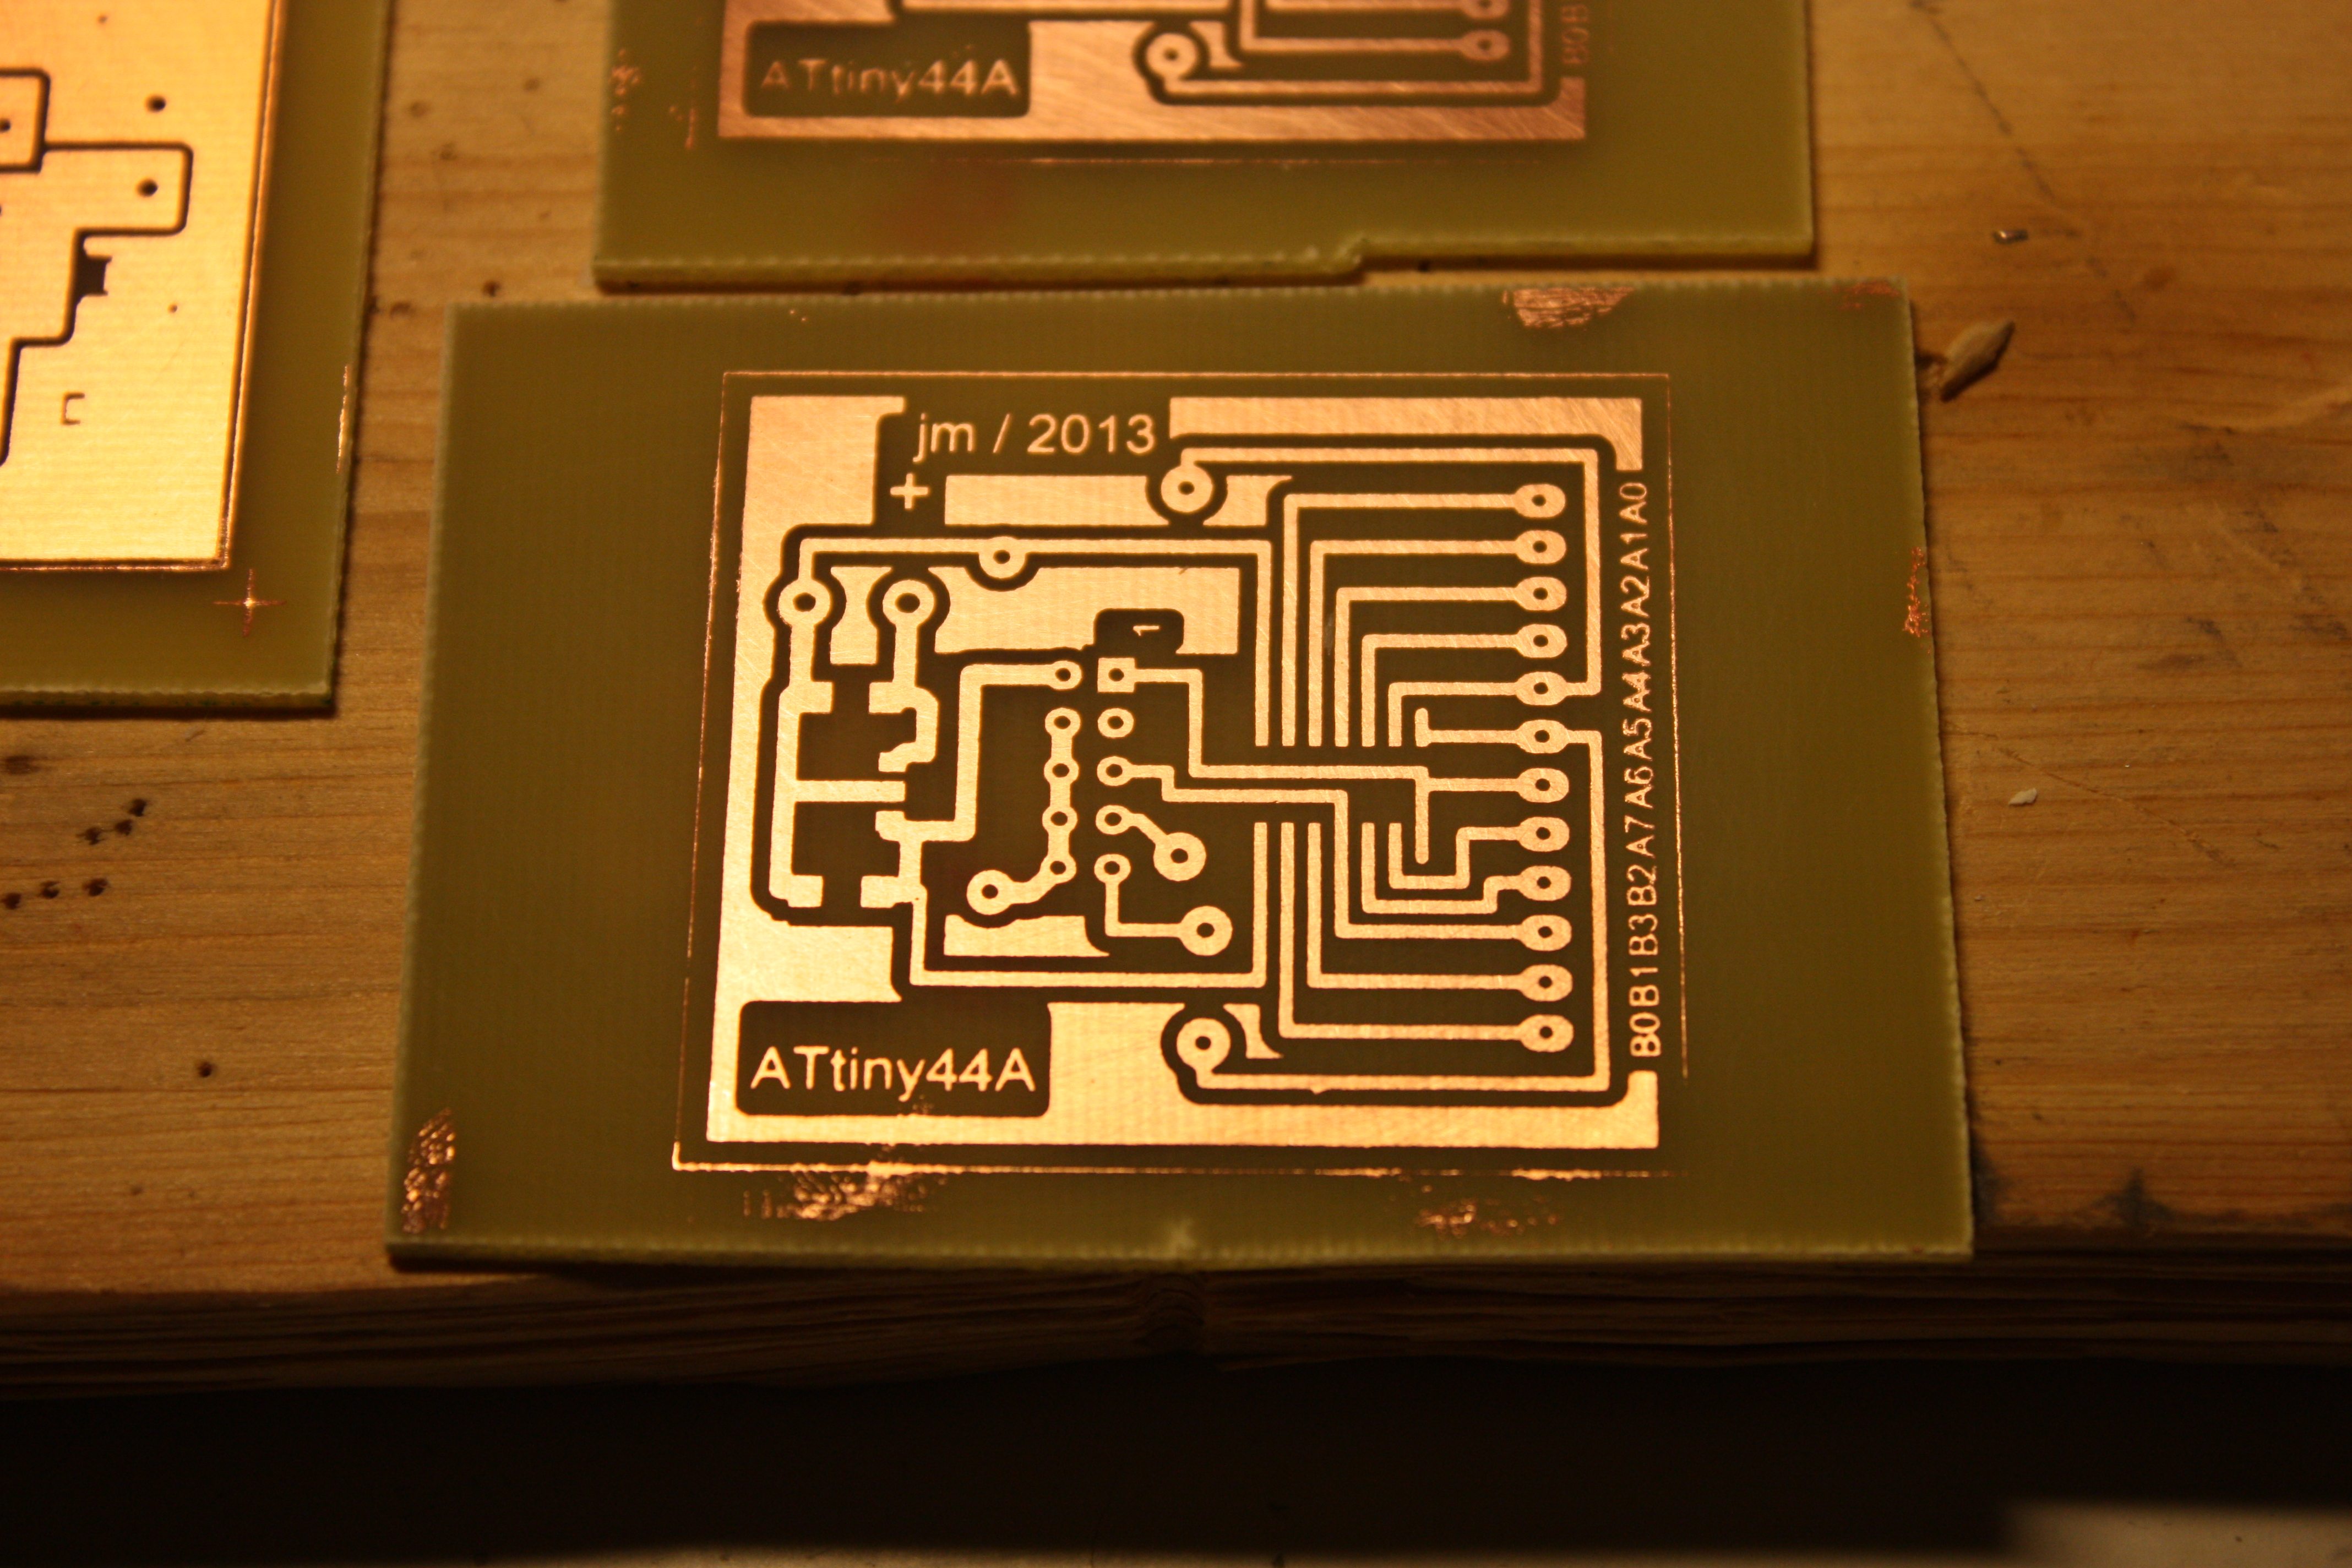 Diy Home Pcb Exposure And Etching Process Just Add Electrons Make Flexible Printing Circuit Board Etched It Looks Like My Manufacturing